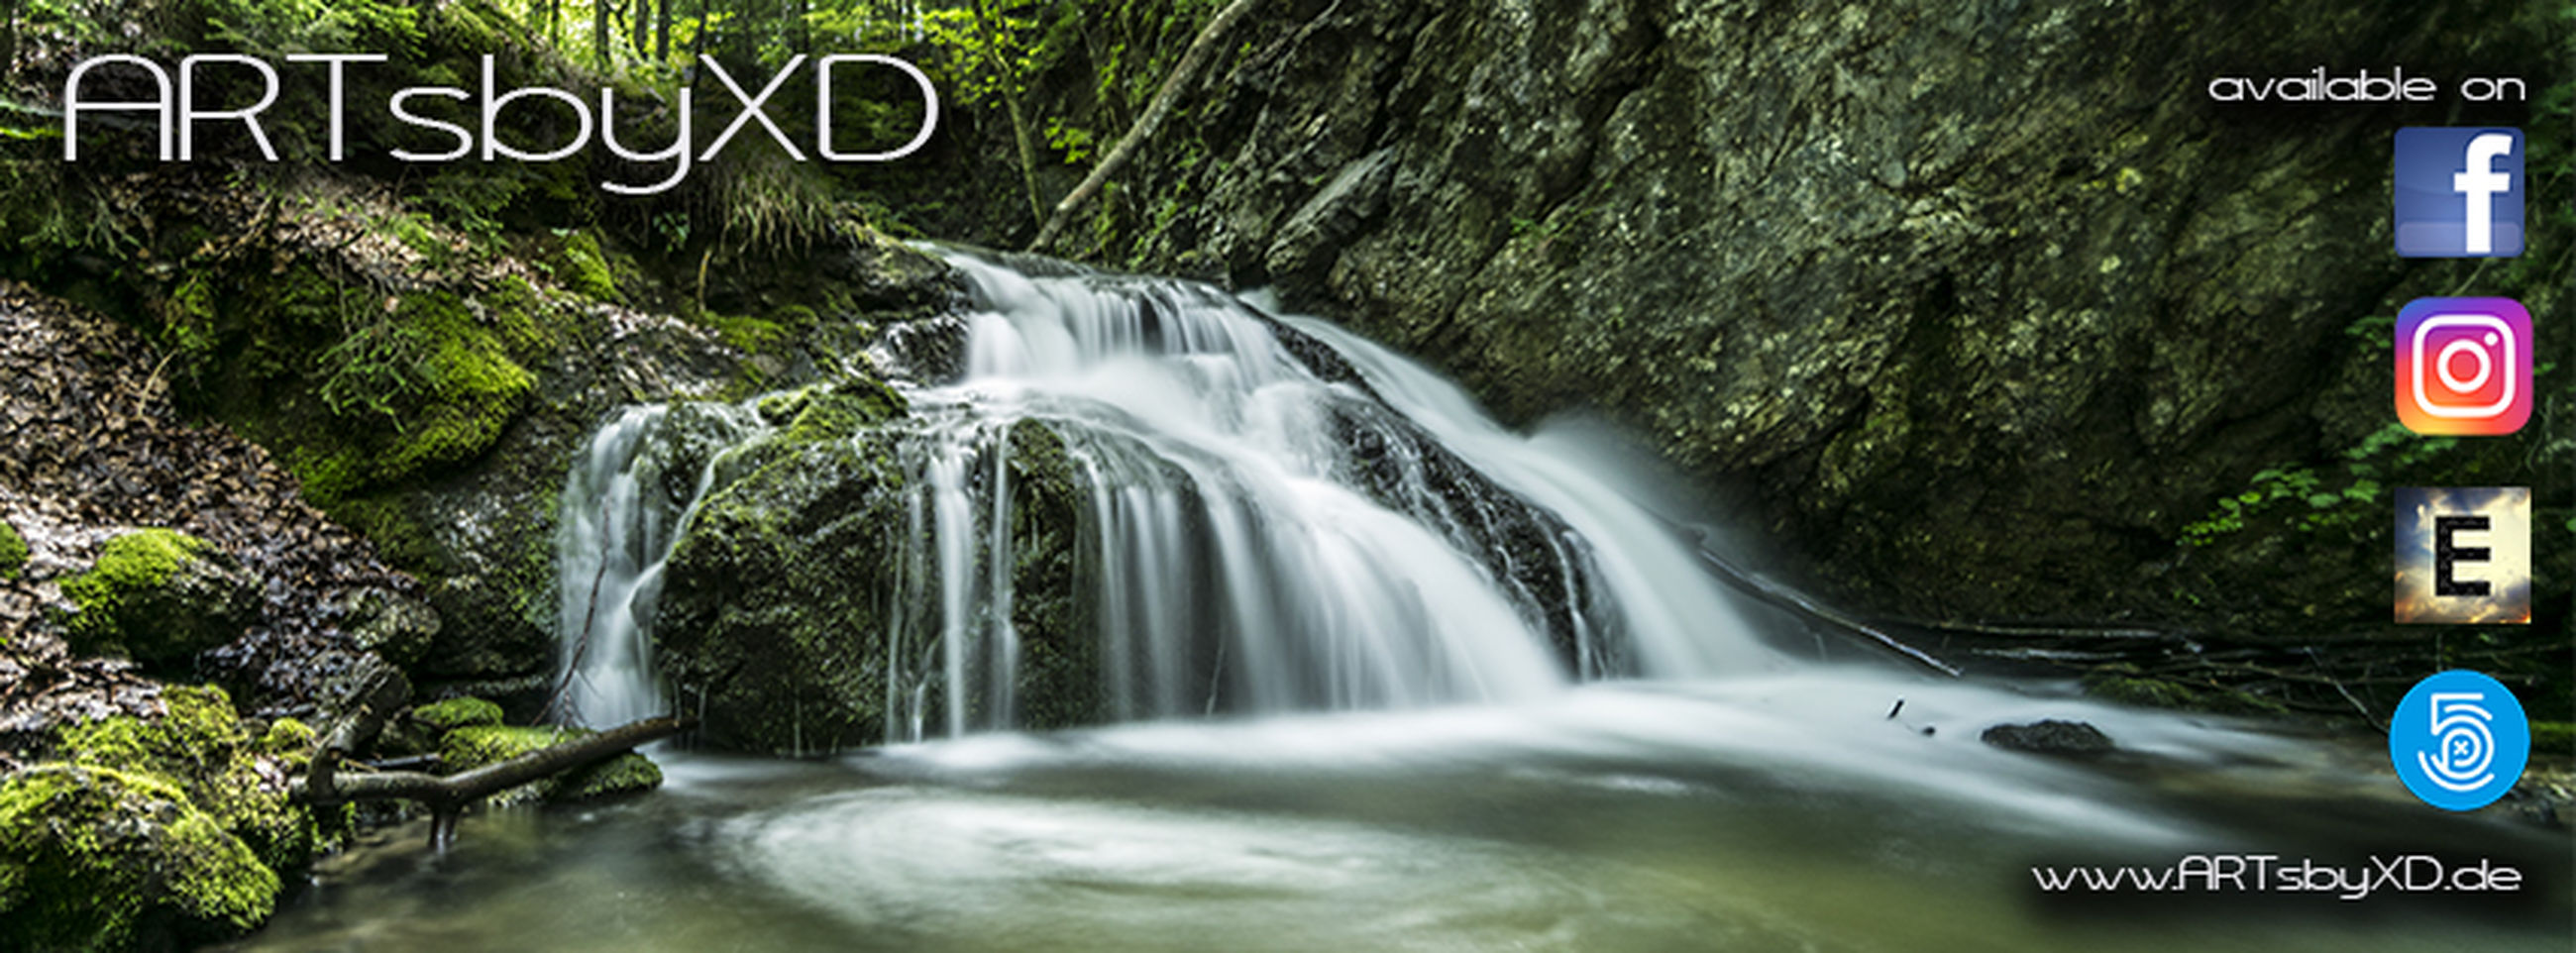 water, waterfall, motion, long exposure, blurred motion, flowing water, beauty in nature, nature, flowing, no people, scenics, outdoors, environment, speed, freshness, tree, day, close-up